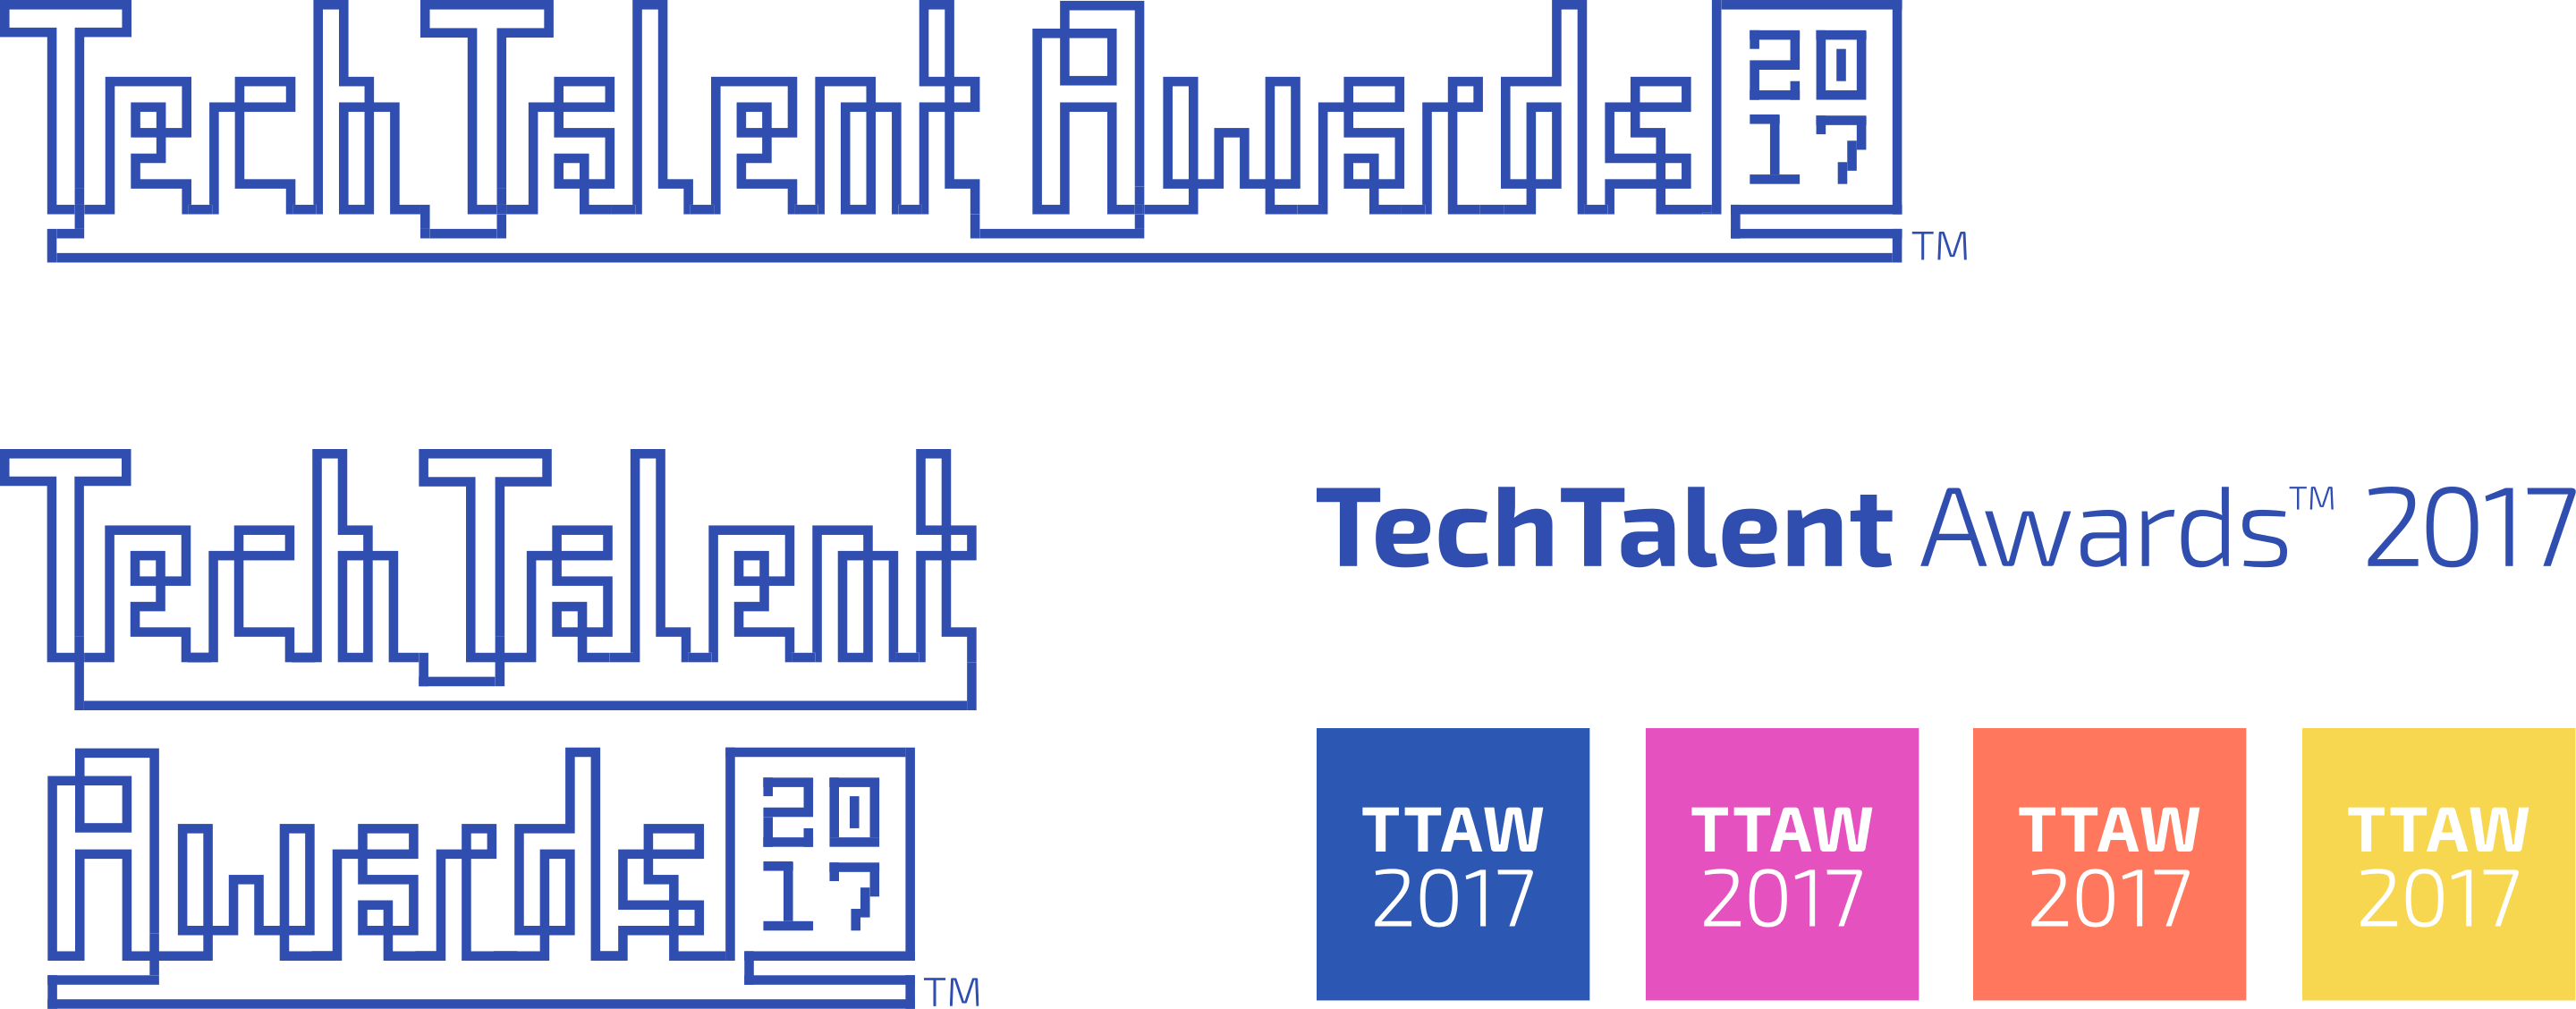 TechTalent Awards year specific logo